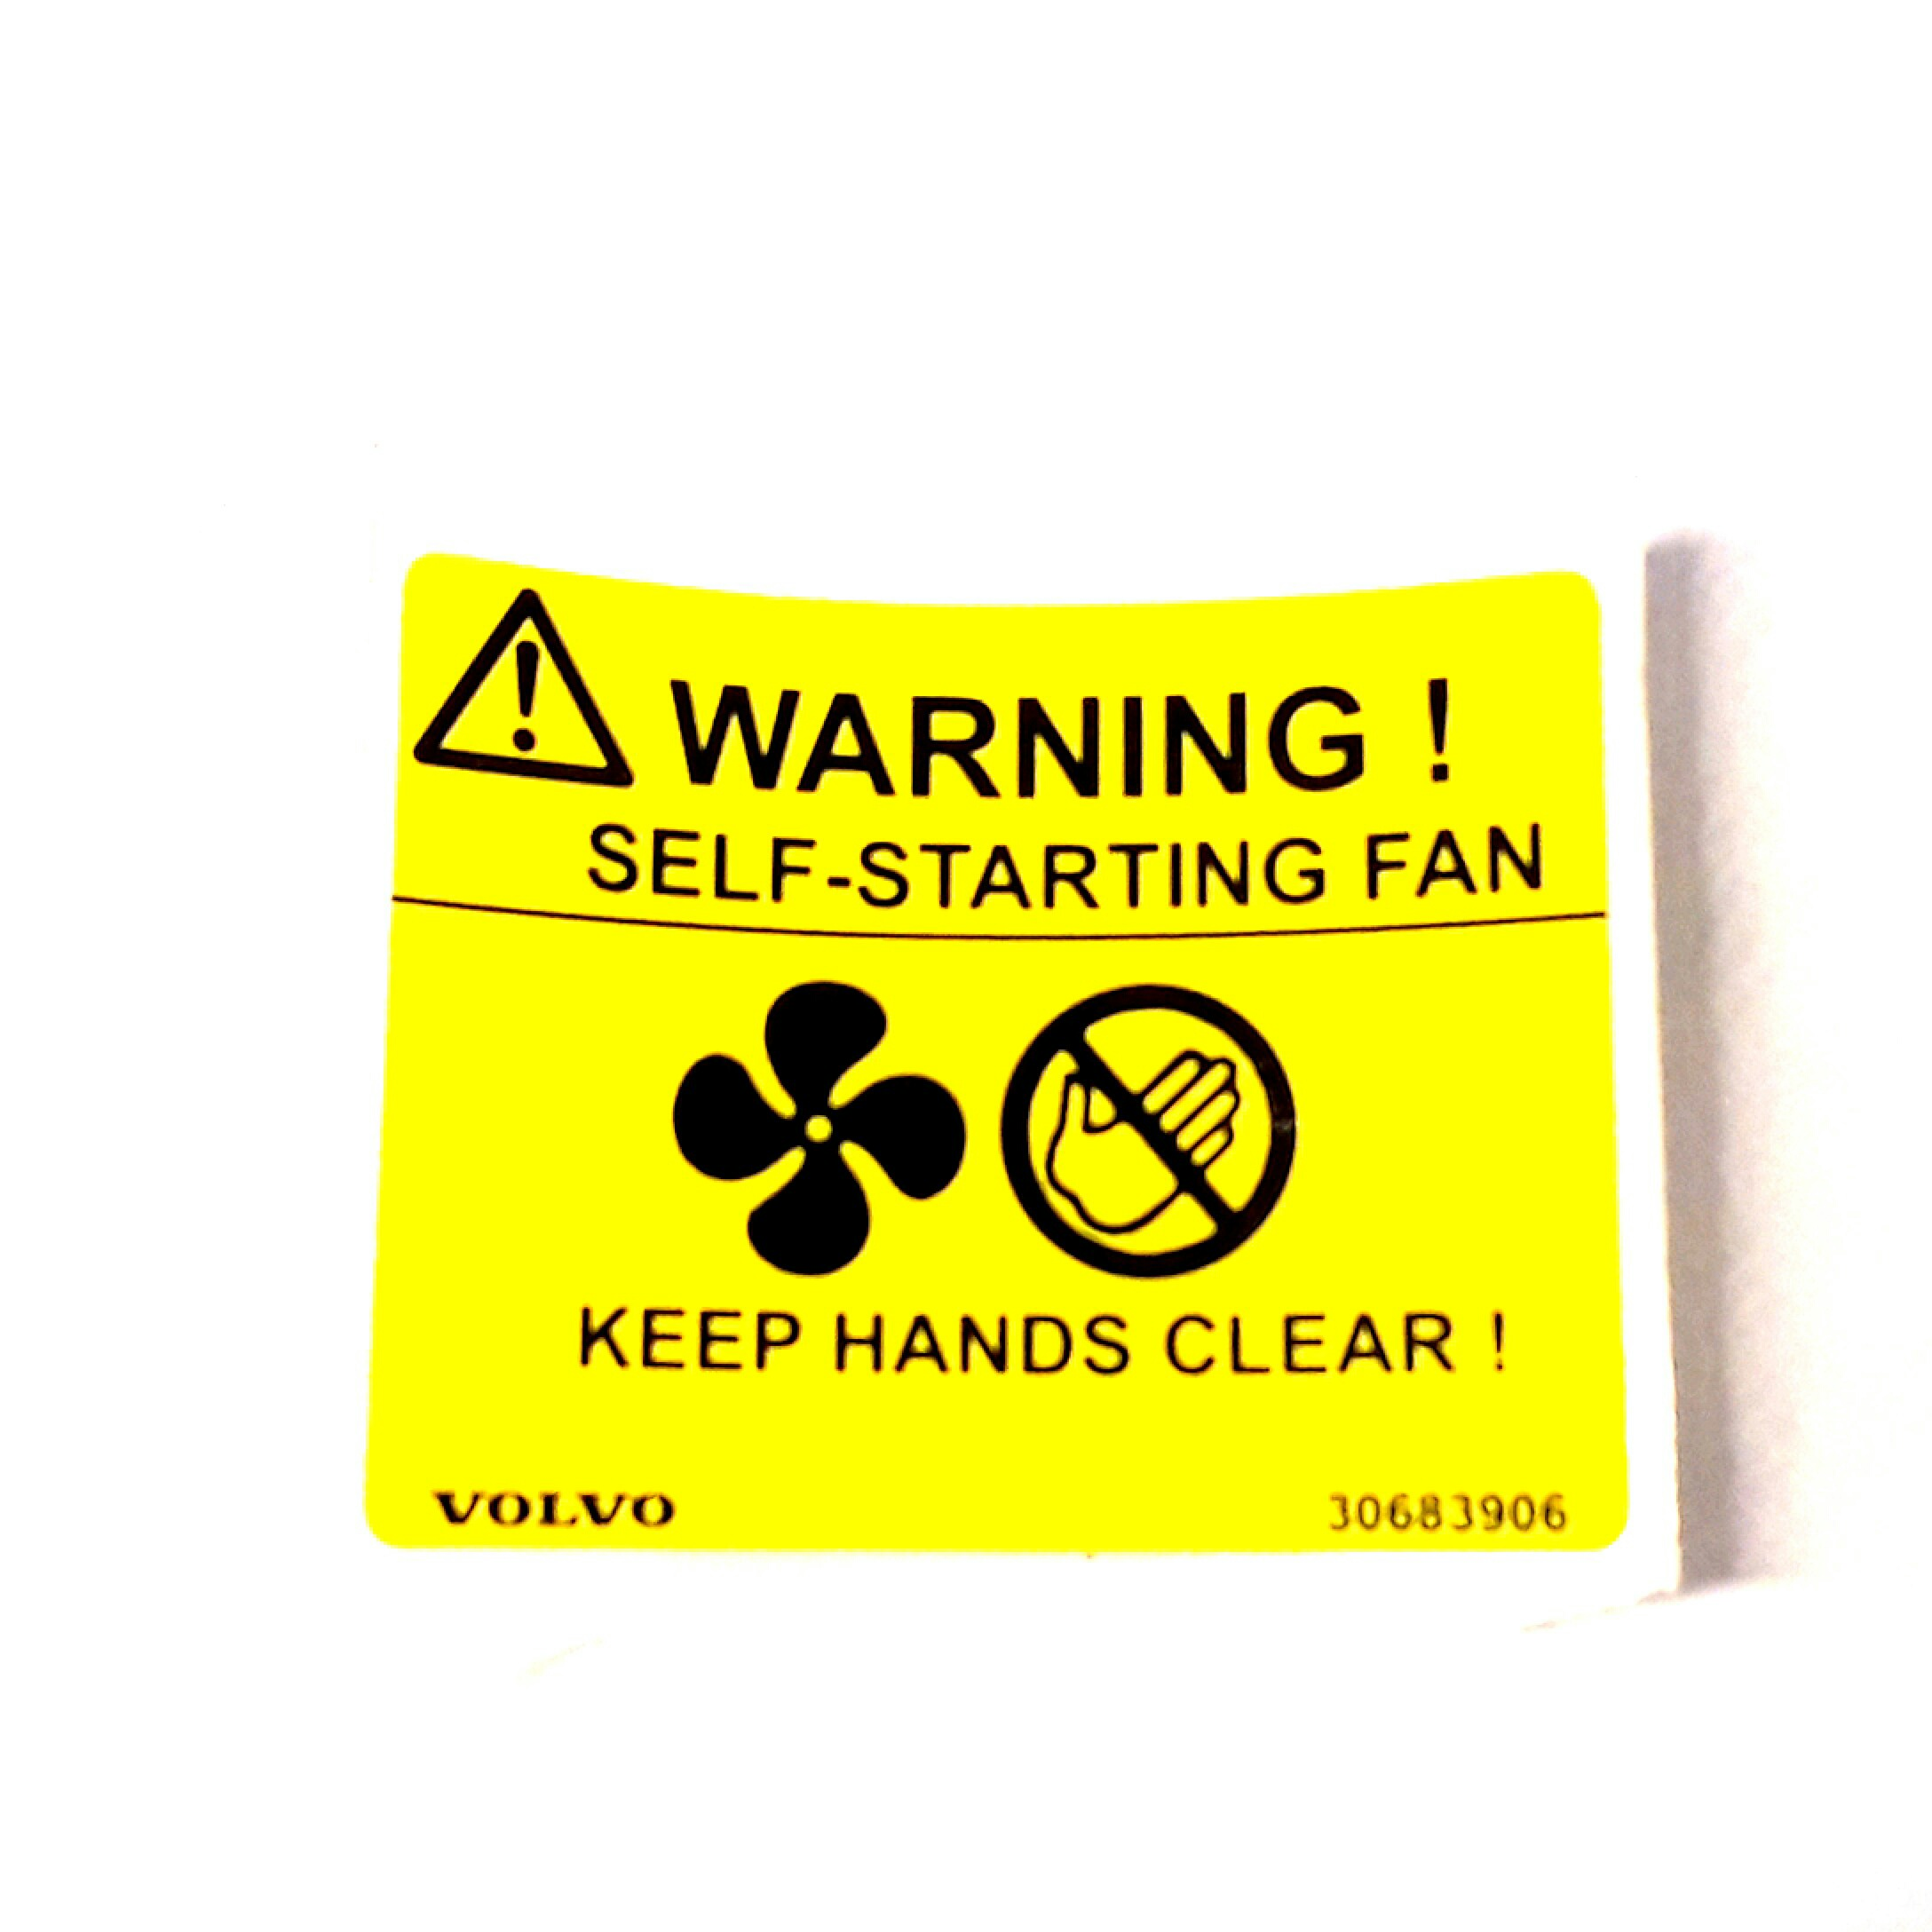 Volvo S40 Caution Label  Decals Engine Compartment  Fan  Ch -249999  Ch -269999  Ch